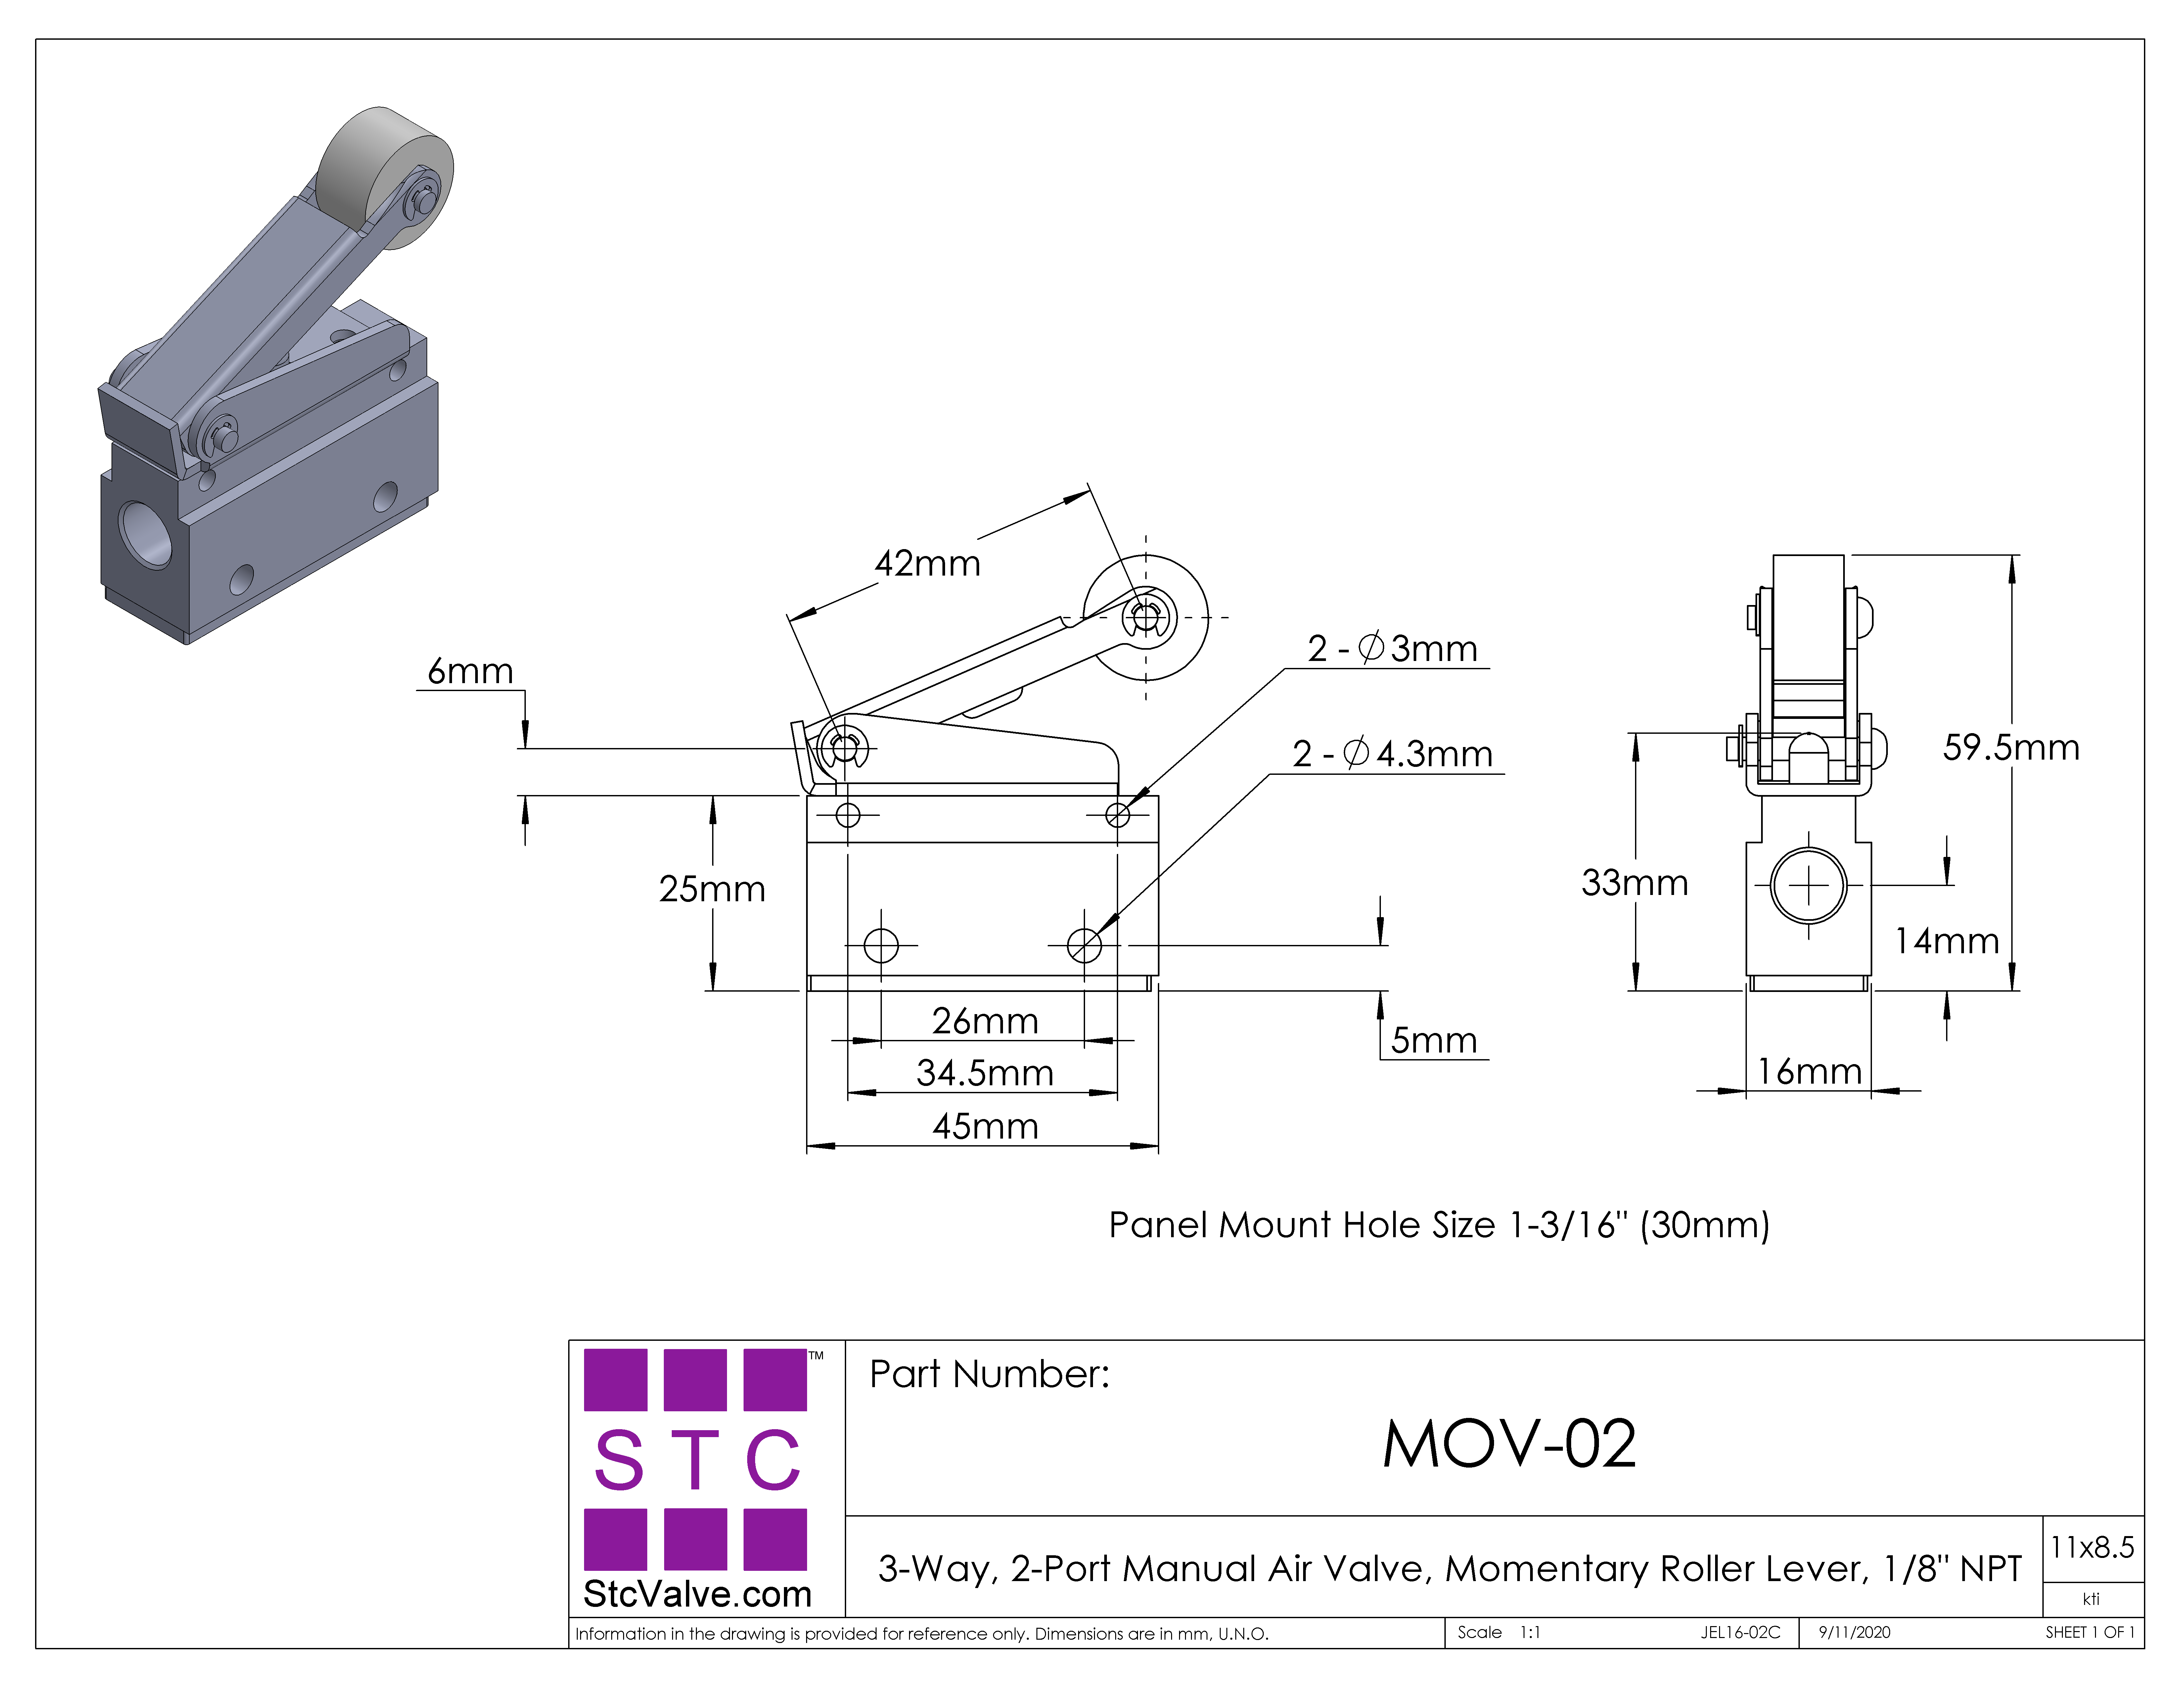 mov 02 hand operated pneumatic air valve with momentary